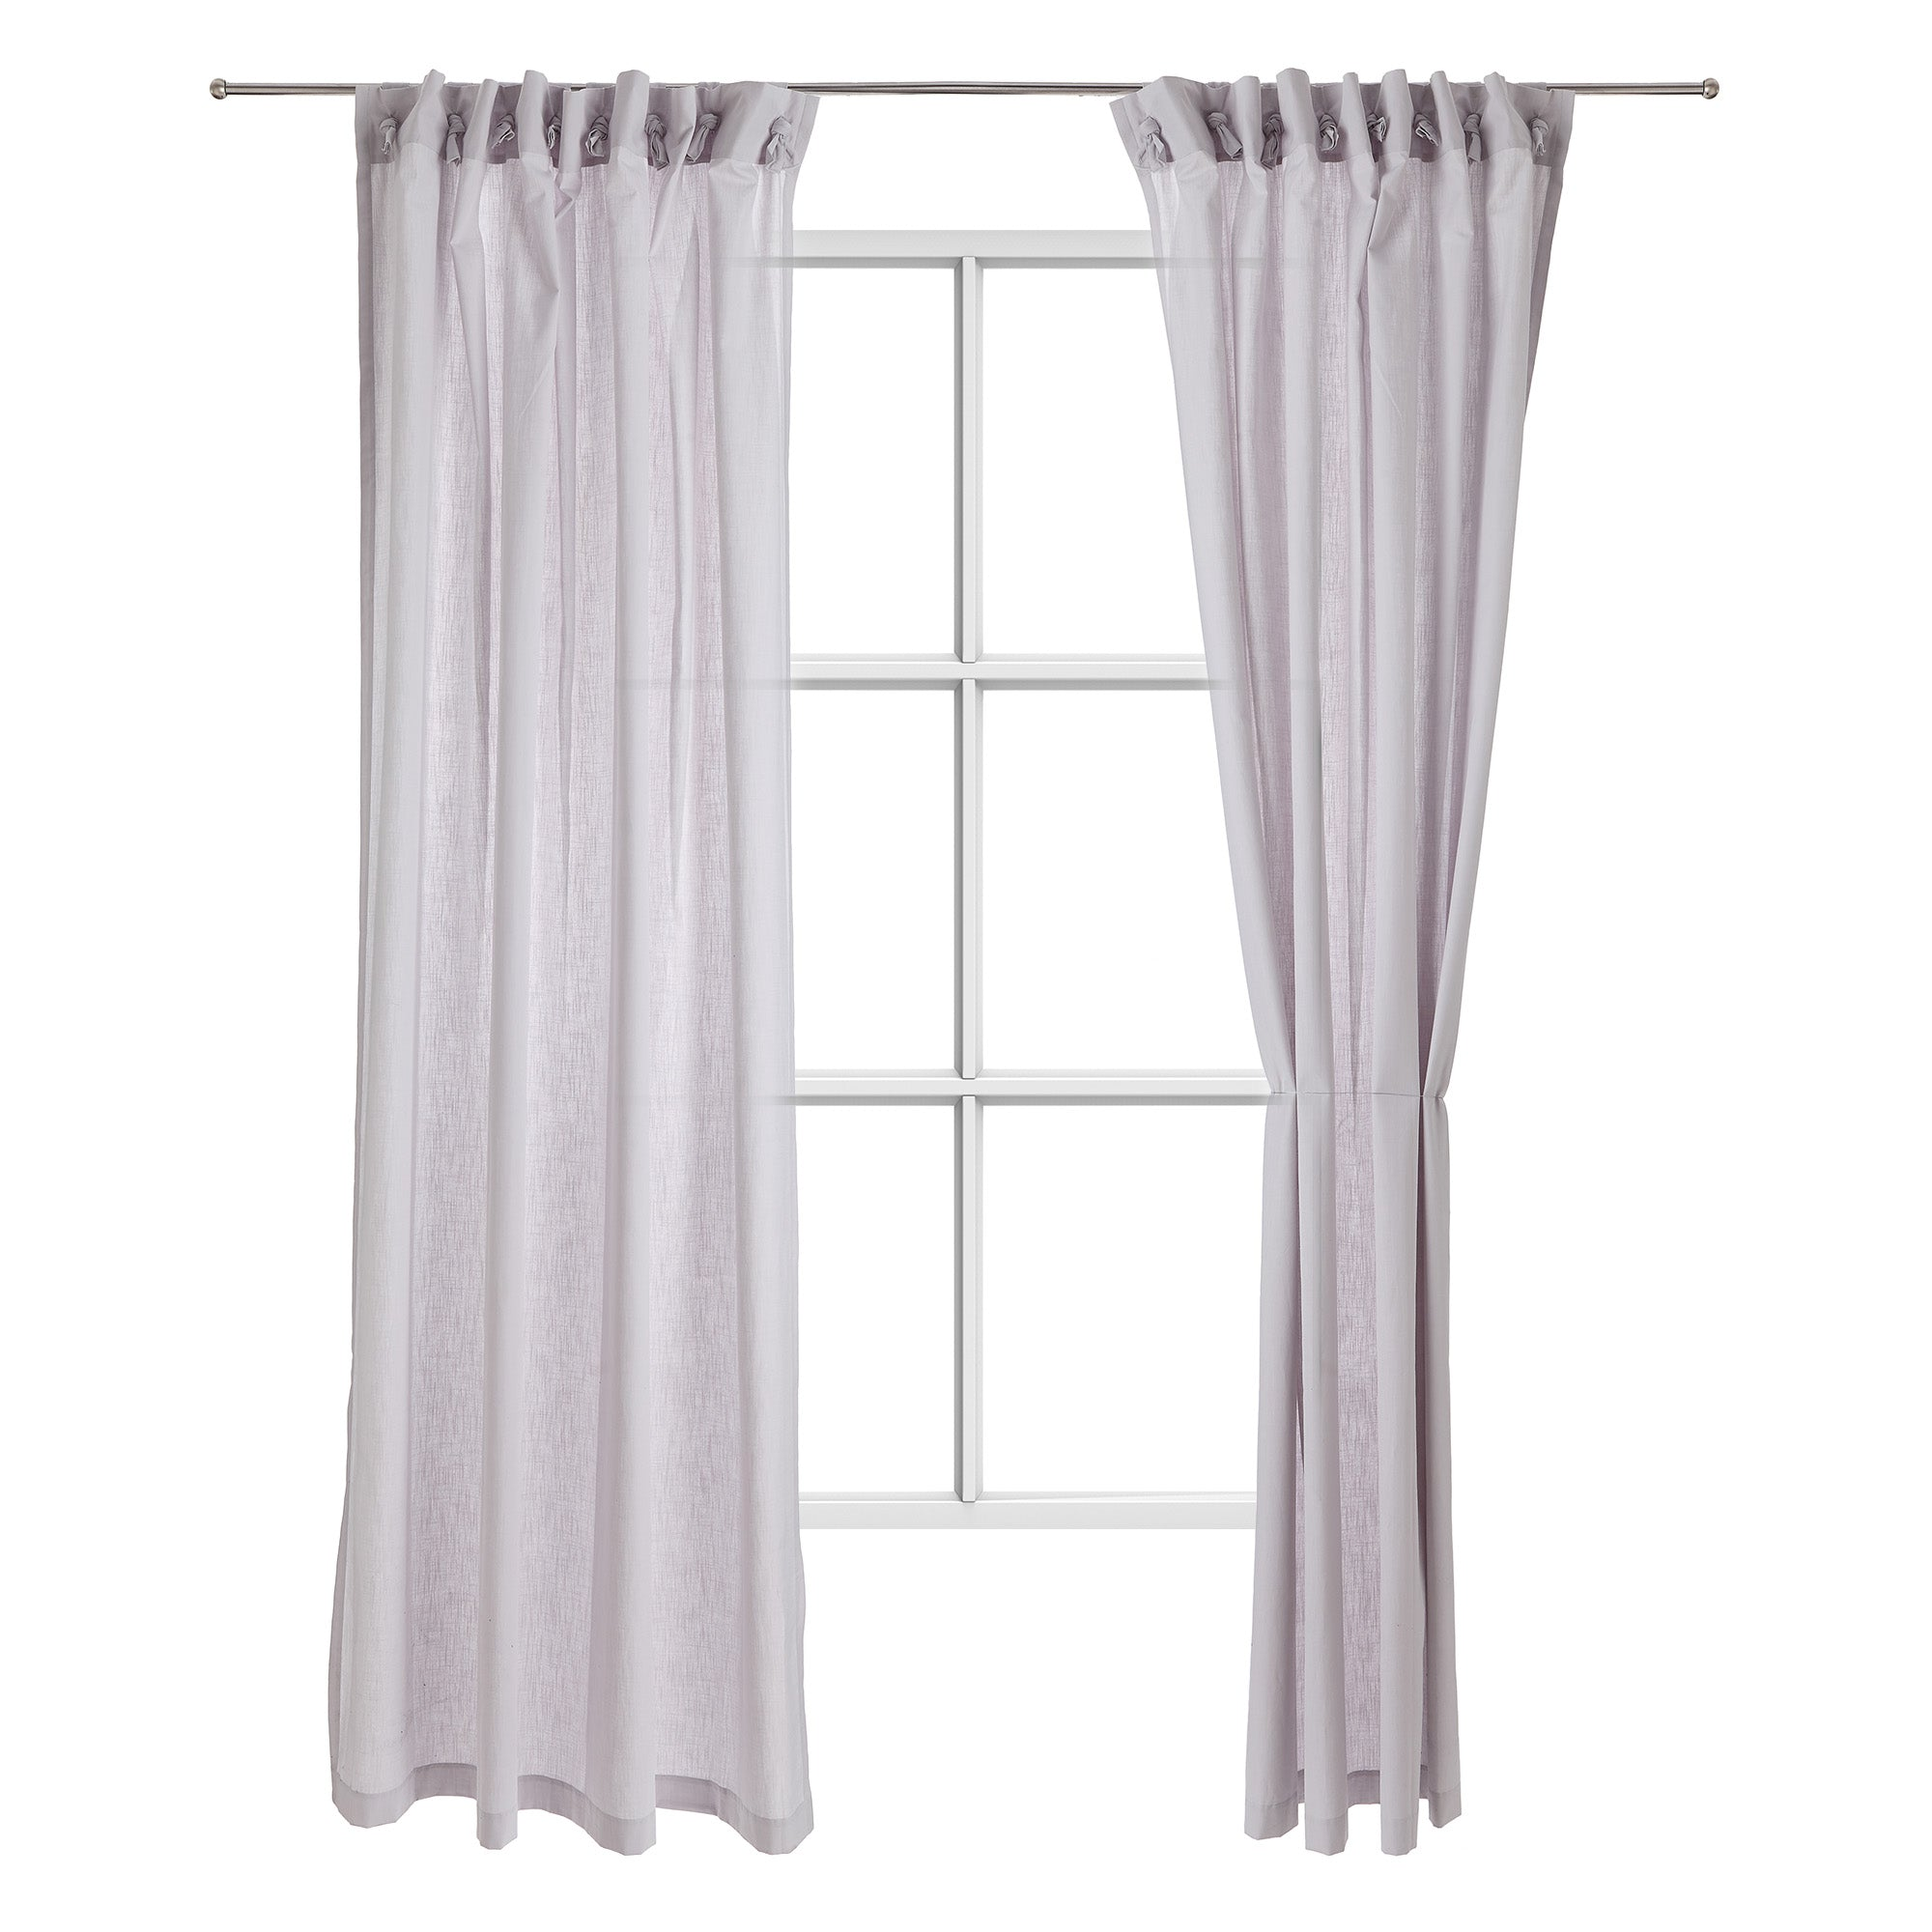 Maninho cotton curtain [Silver grey]